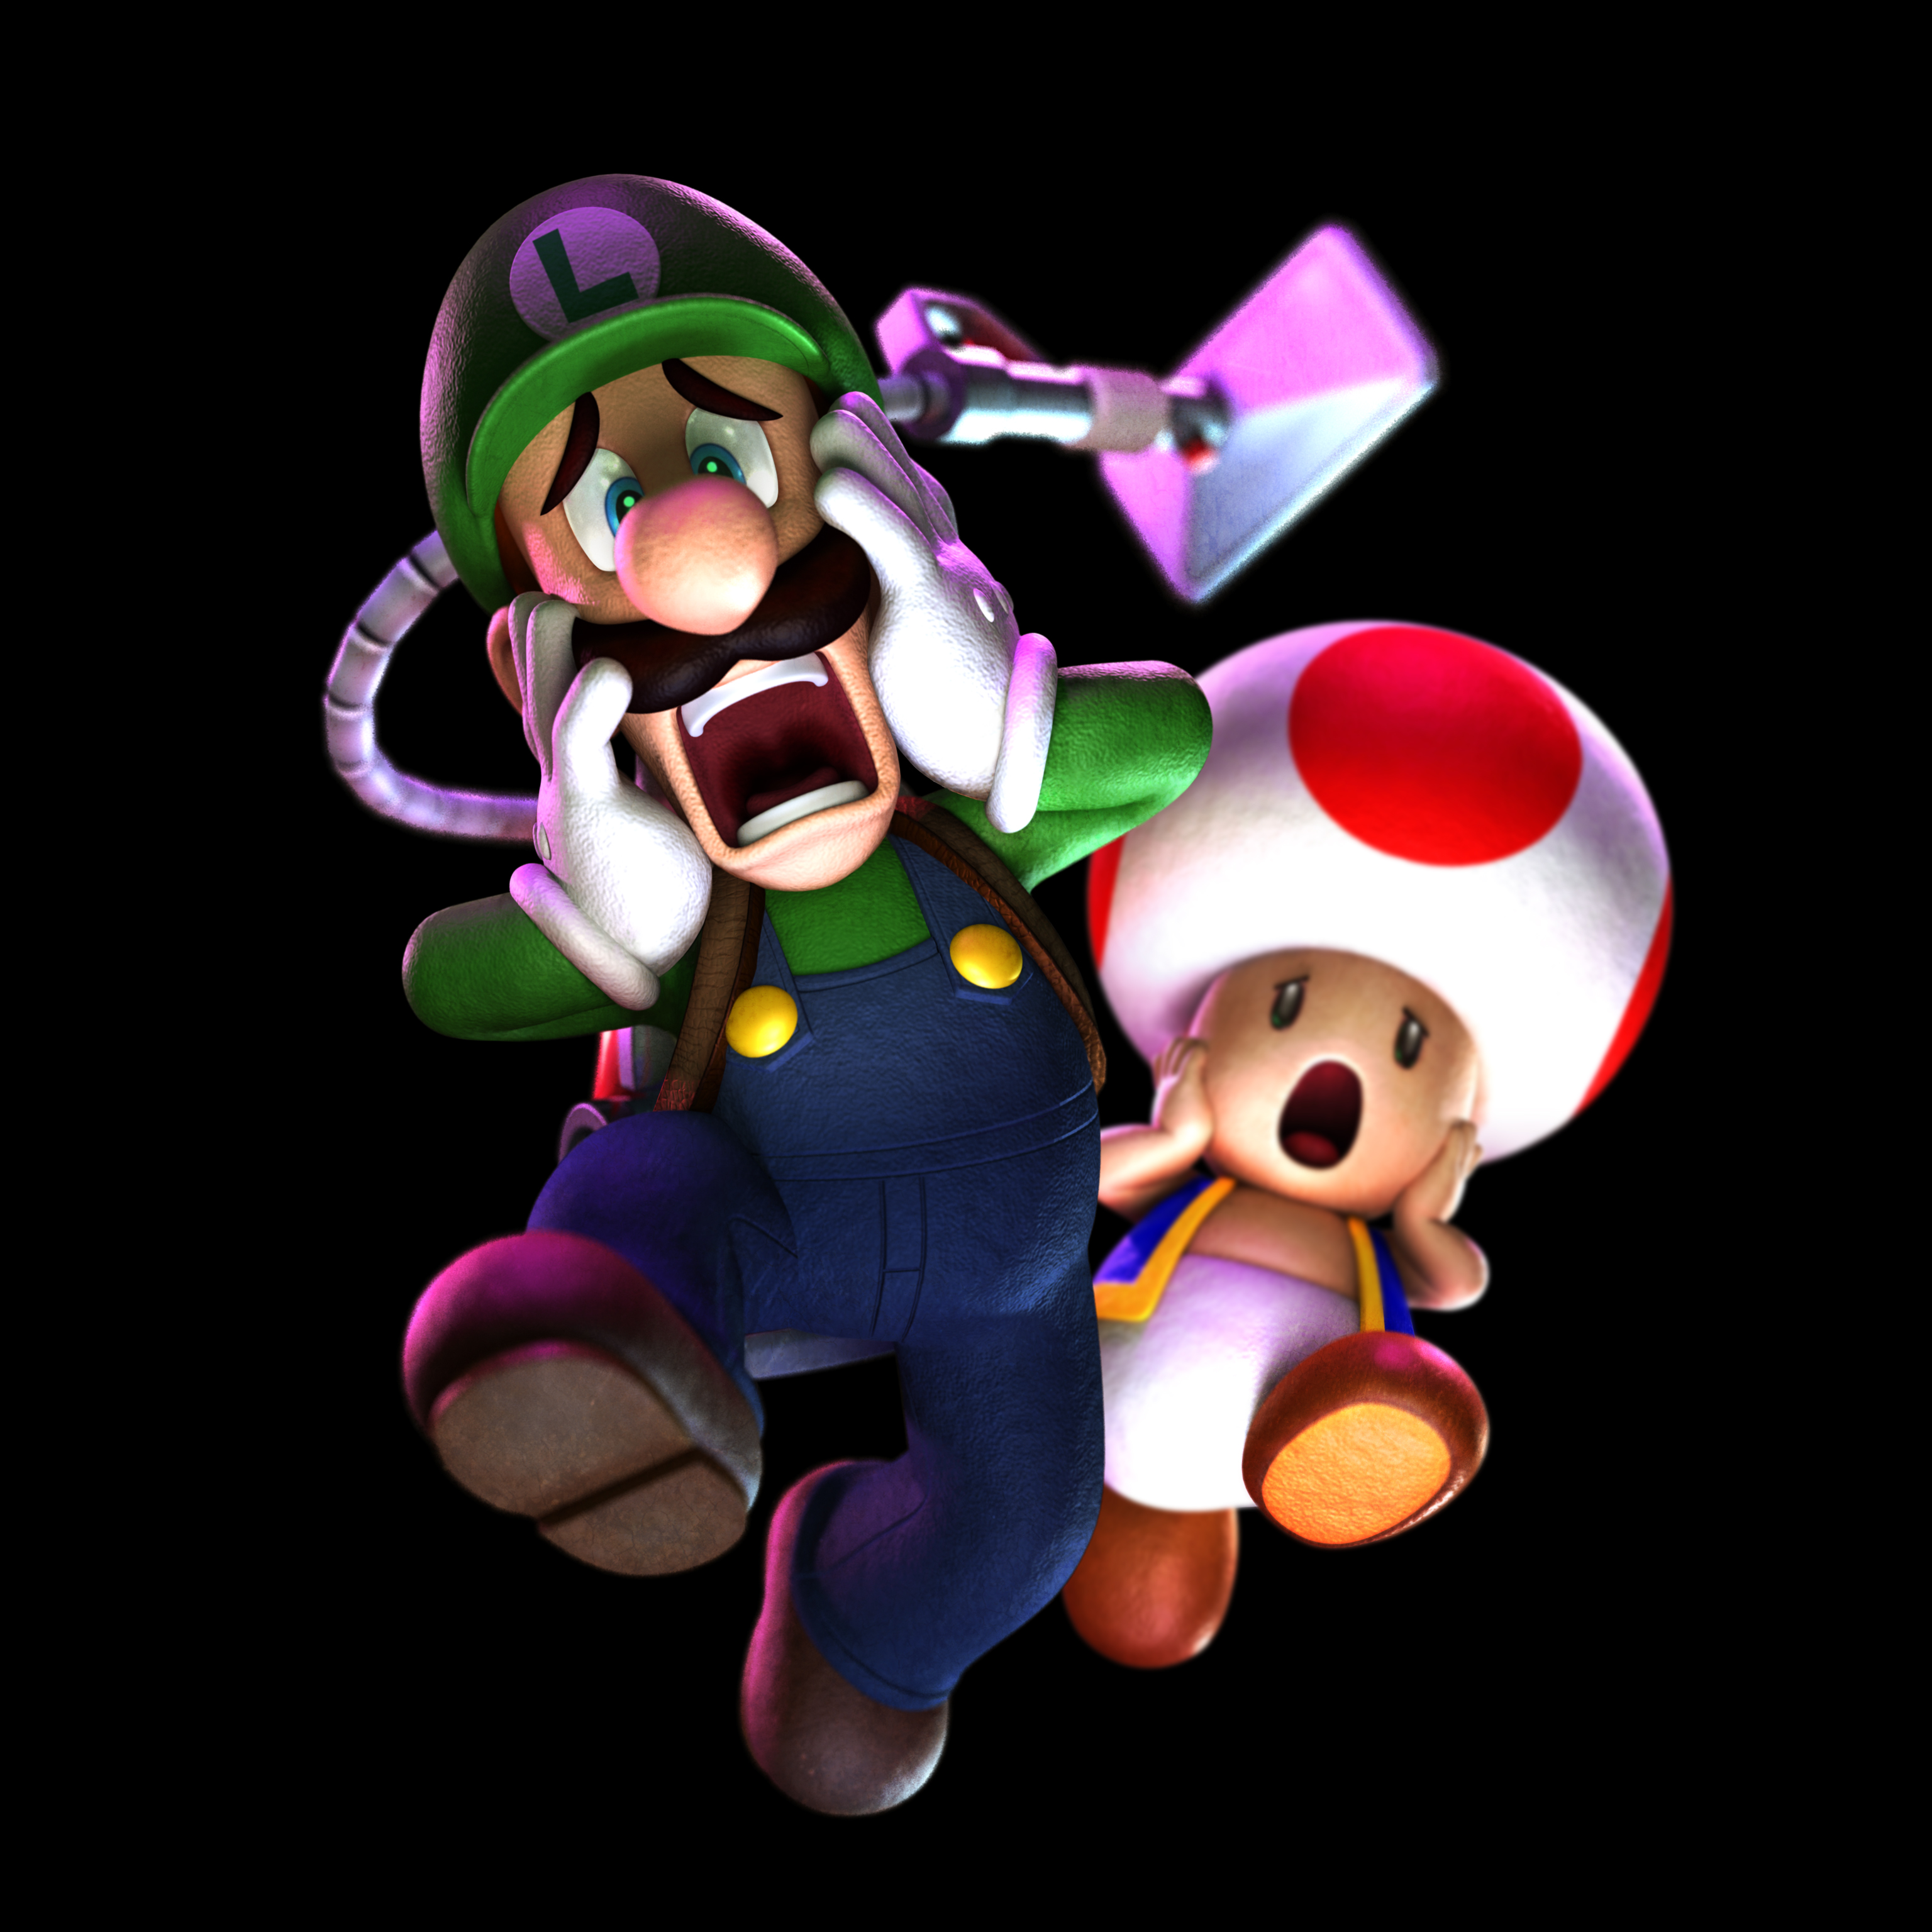 Luigi's Mansion: Dark Moon Art » Scared Luigi and Toad